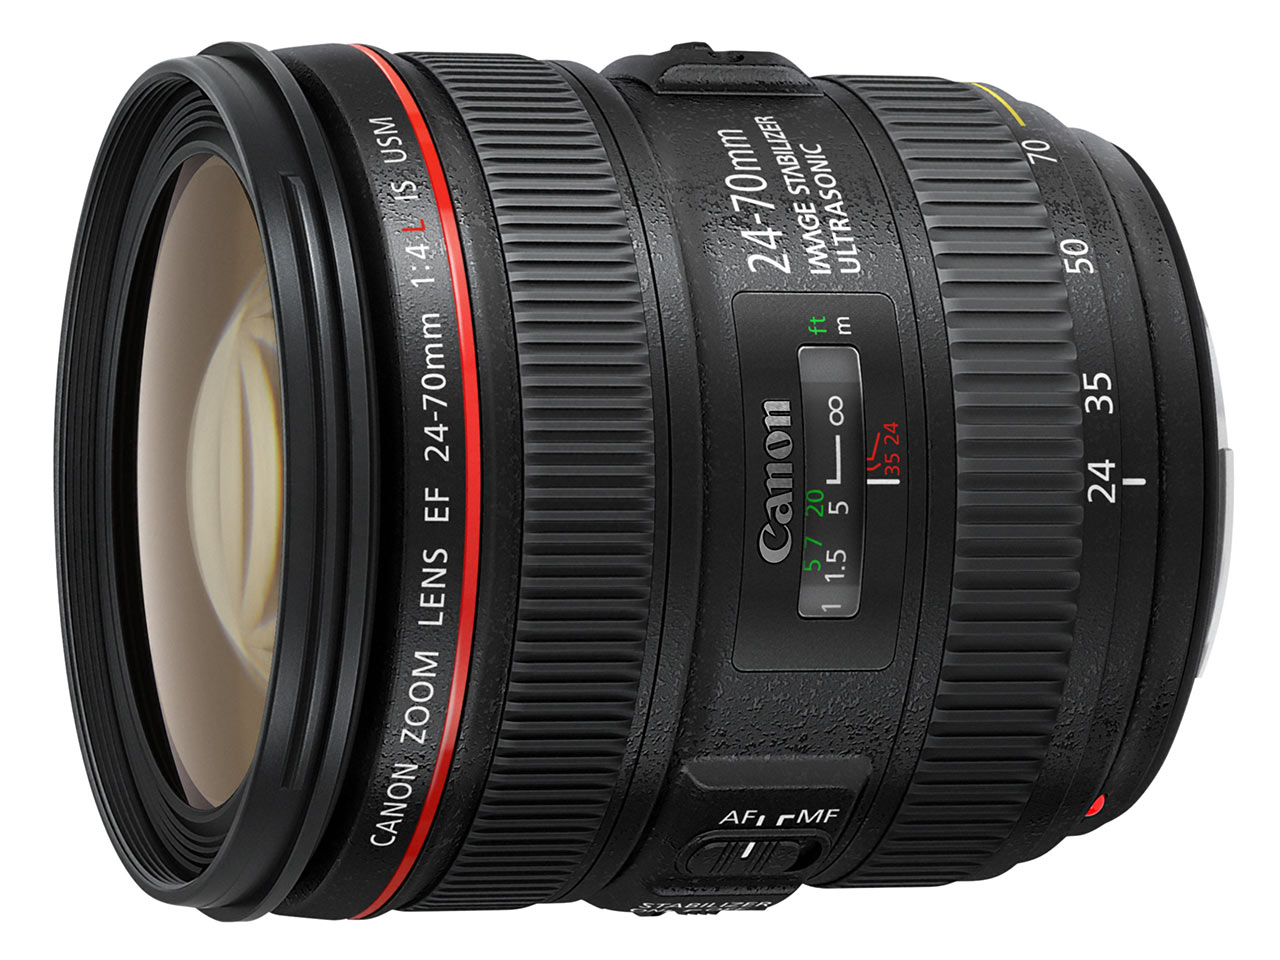 New Canon 24-70 f4 L IS and 35mm f2 IS Official